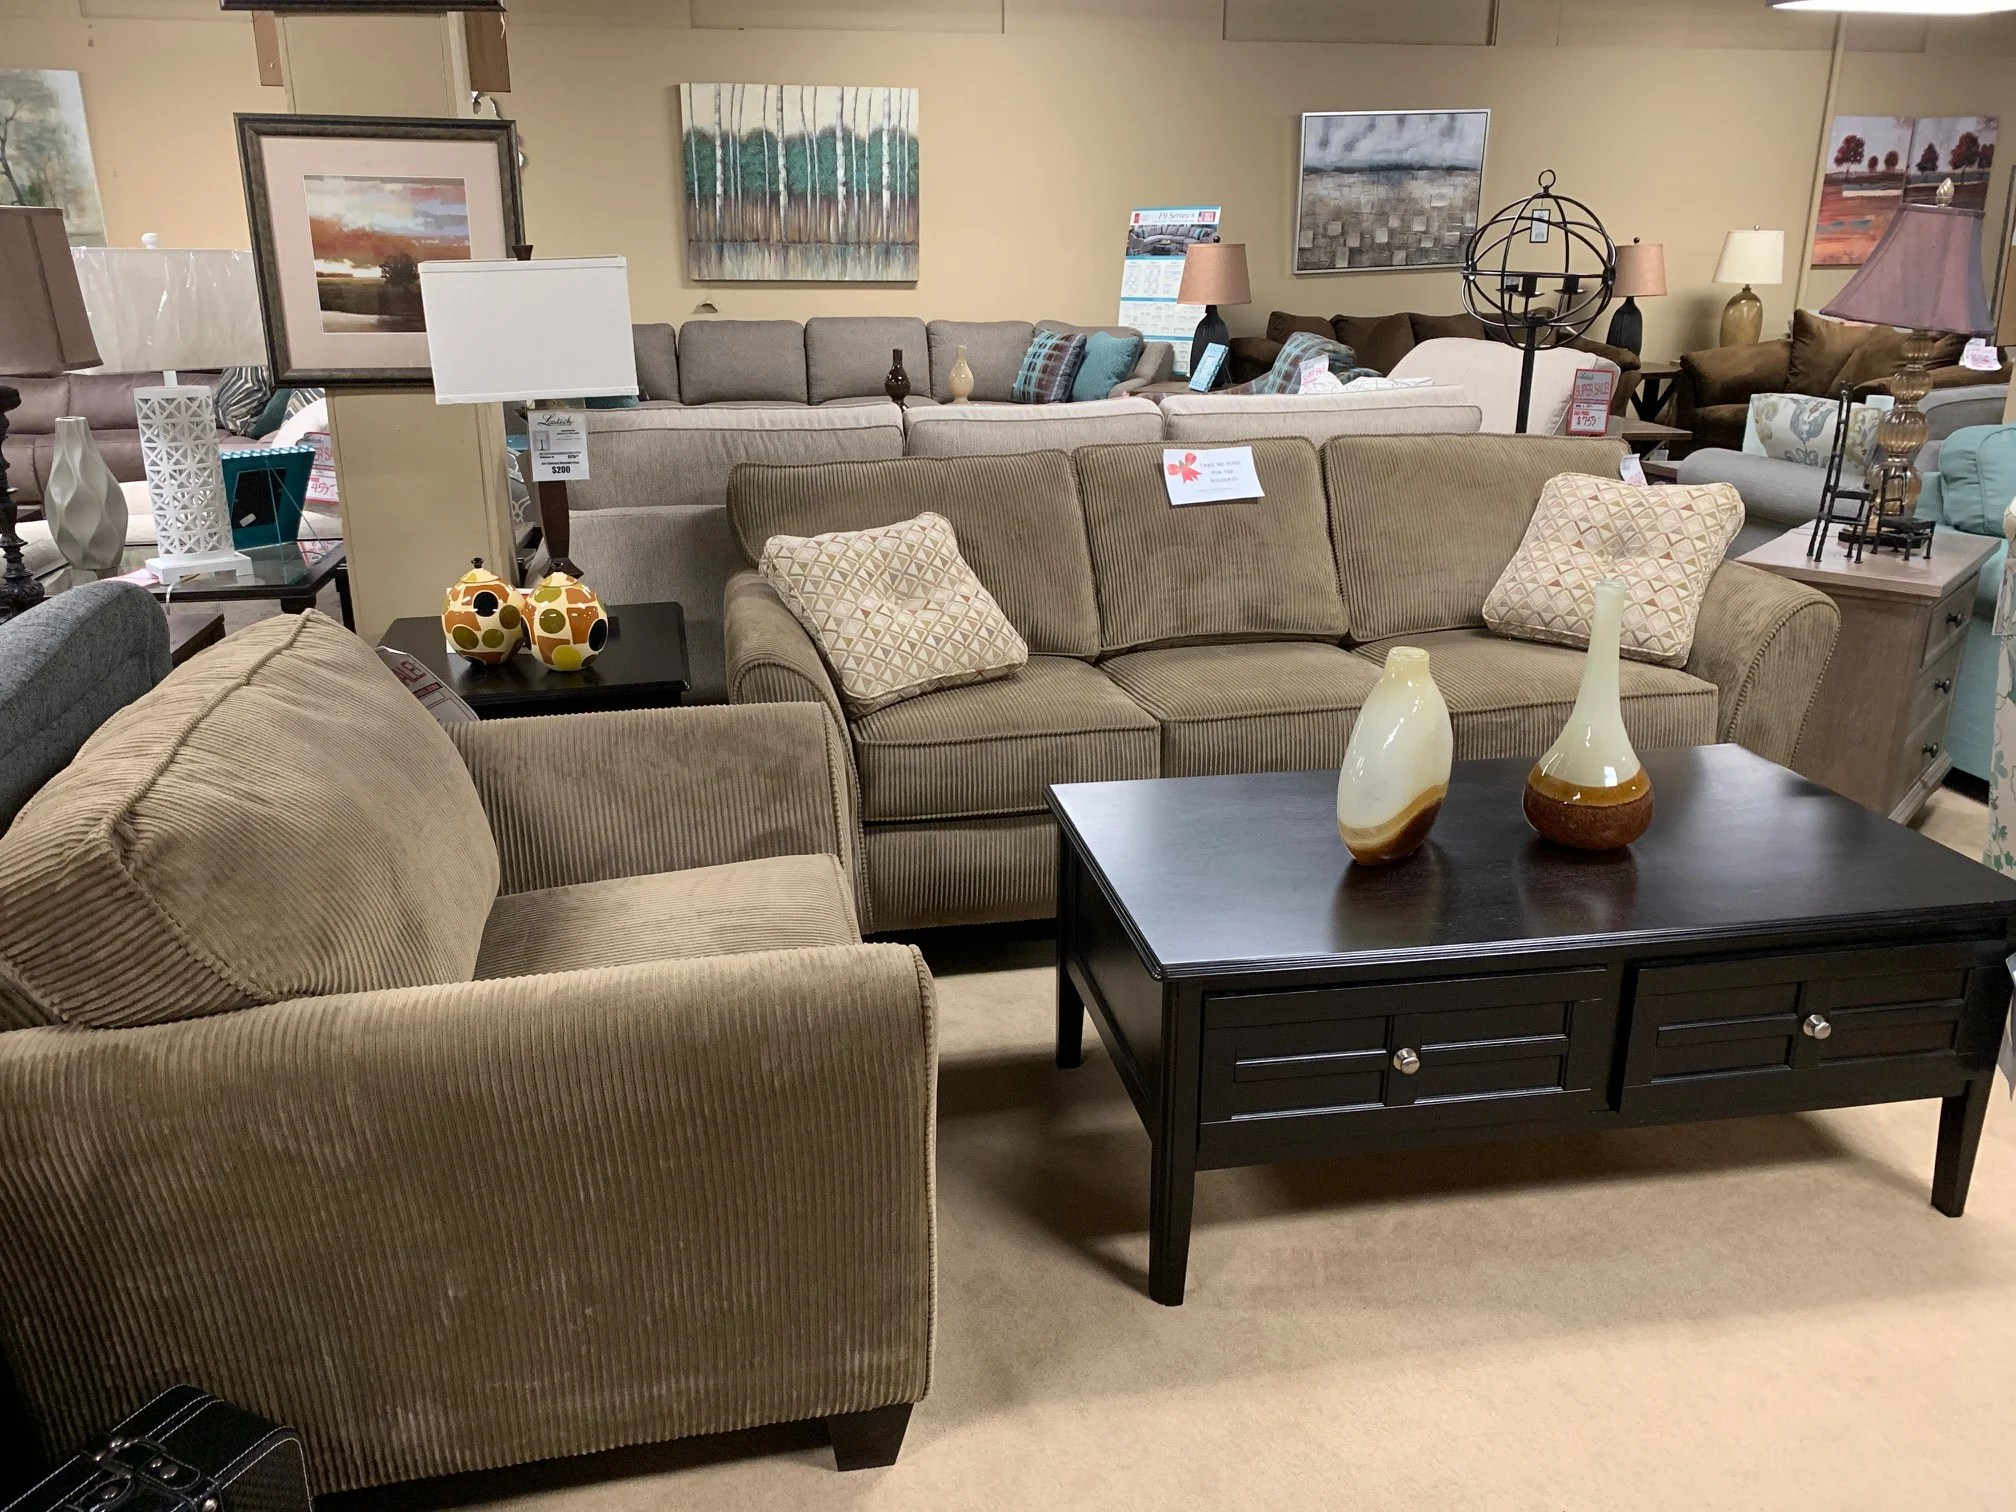 Sofa Outlets Exeter Clearance Lastick Furniture Floor Coverings Pottstown Pa 19464